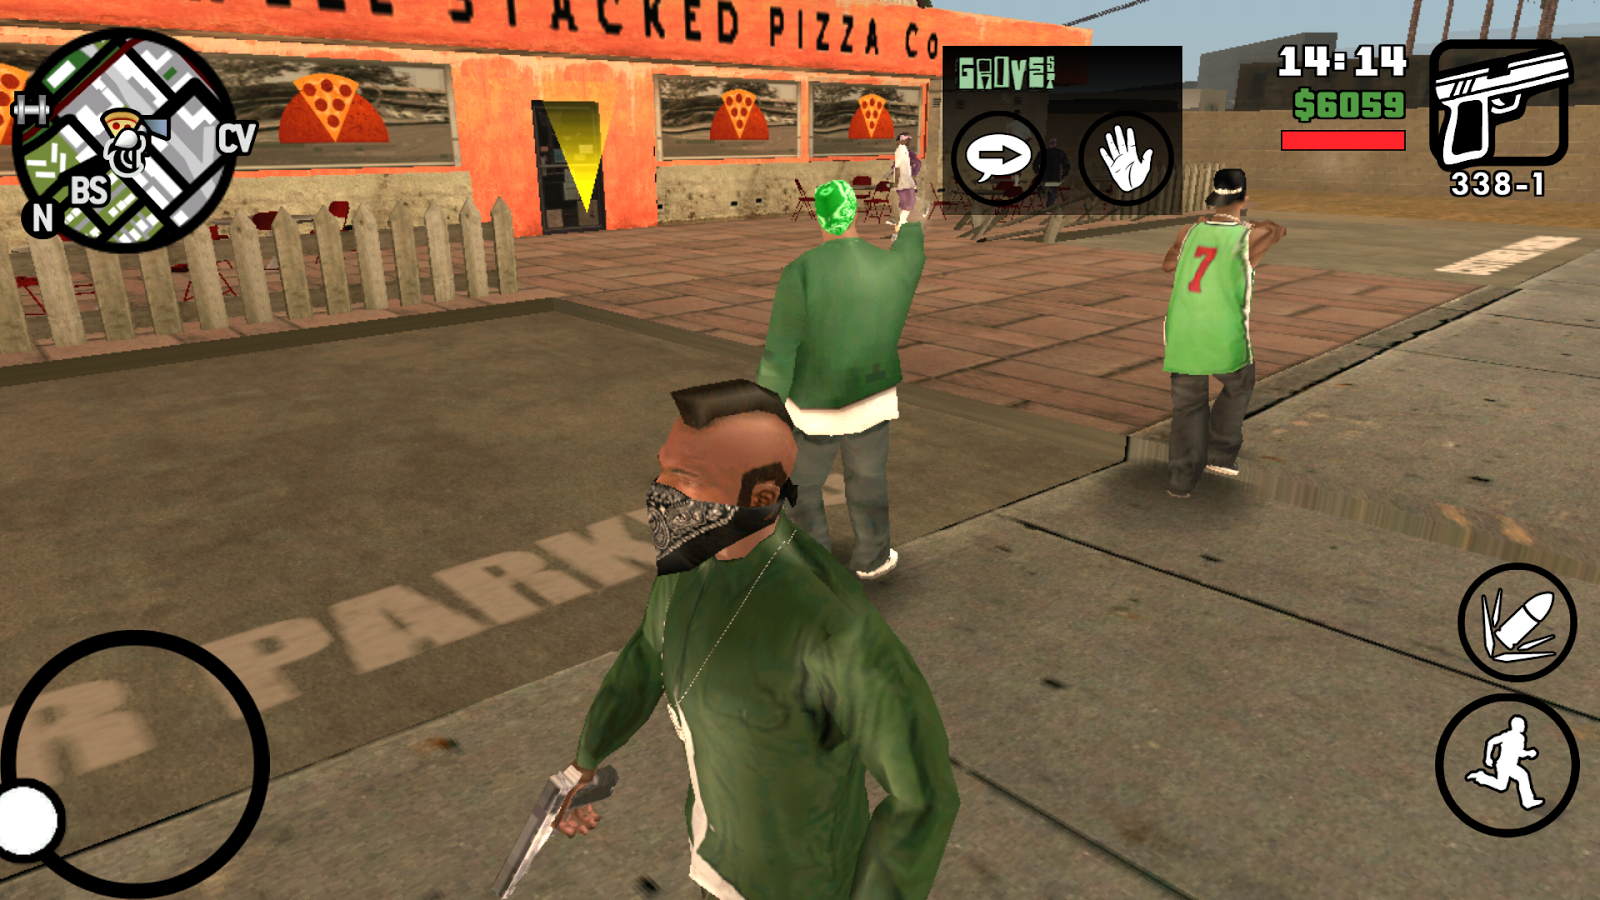 gta san andreas game free download for android tablet